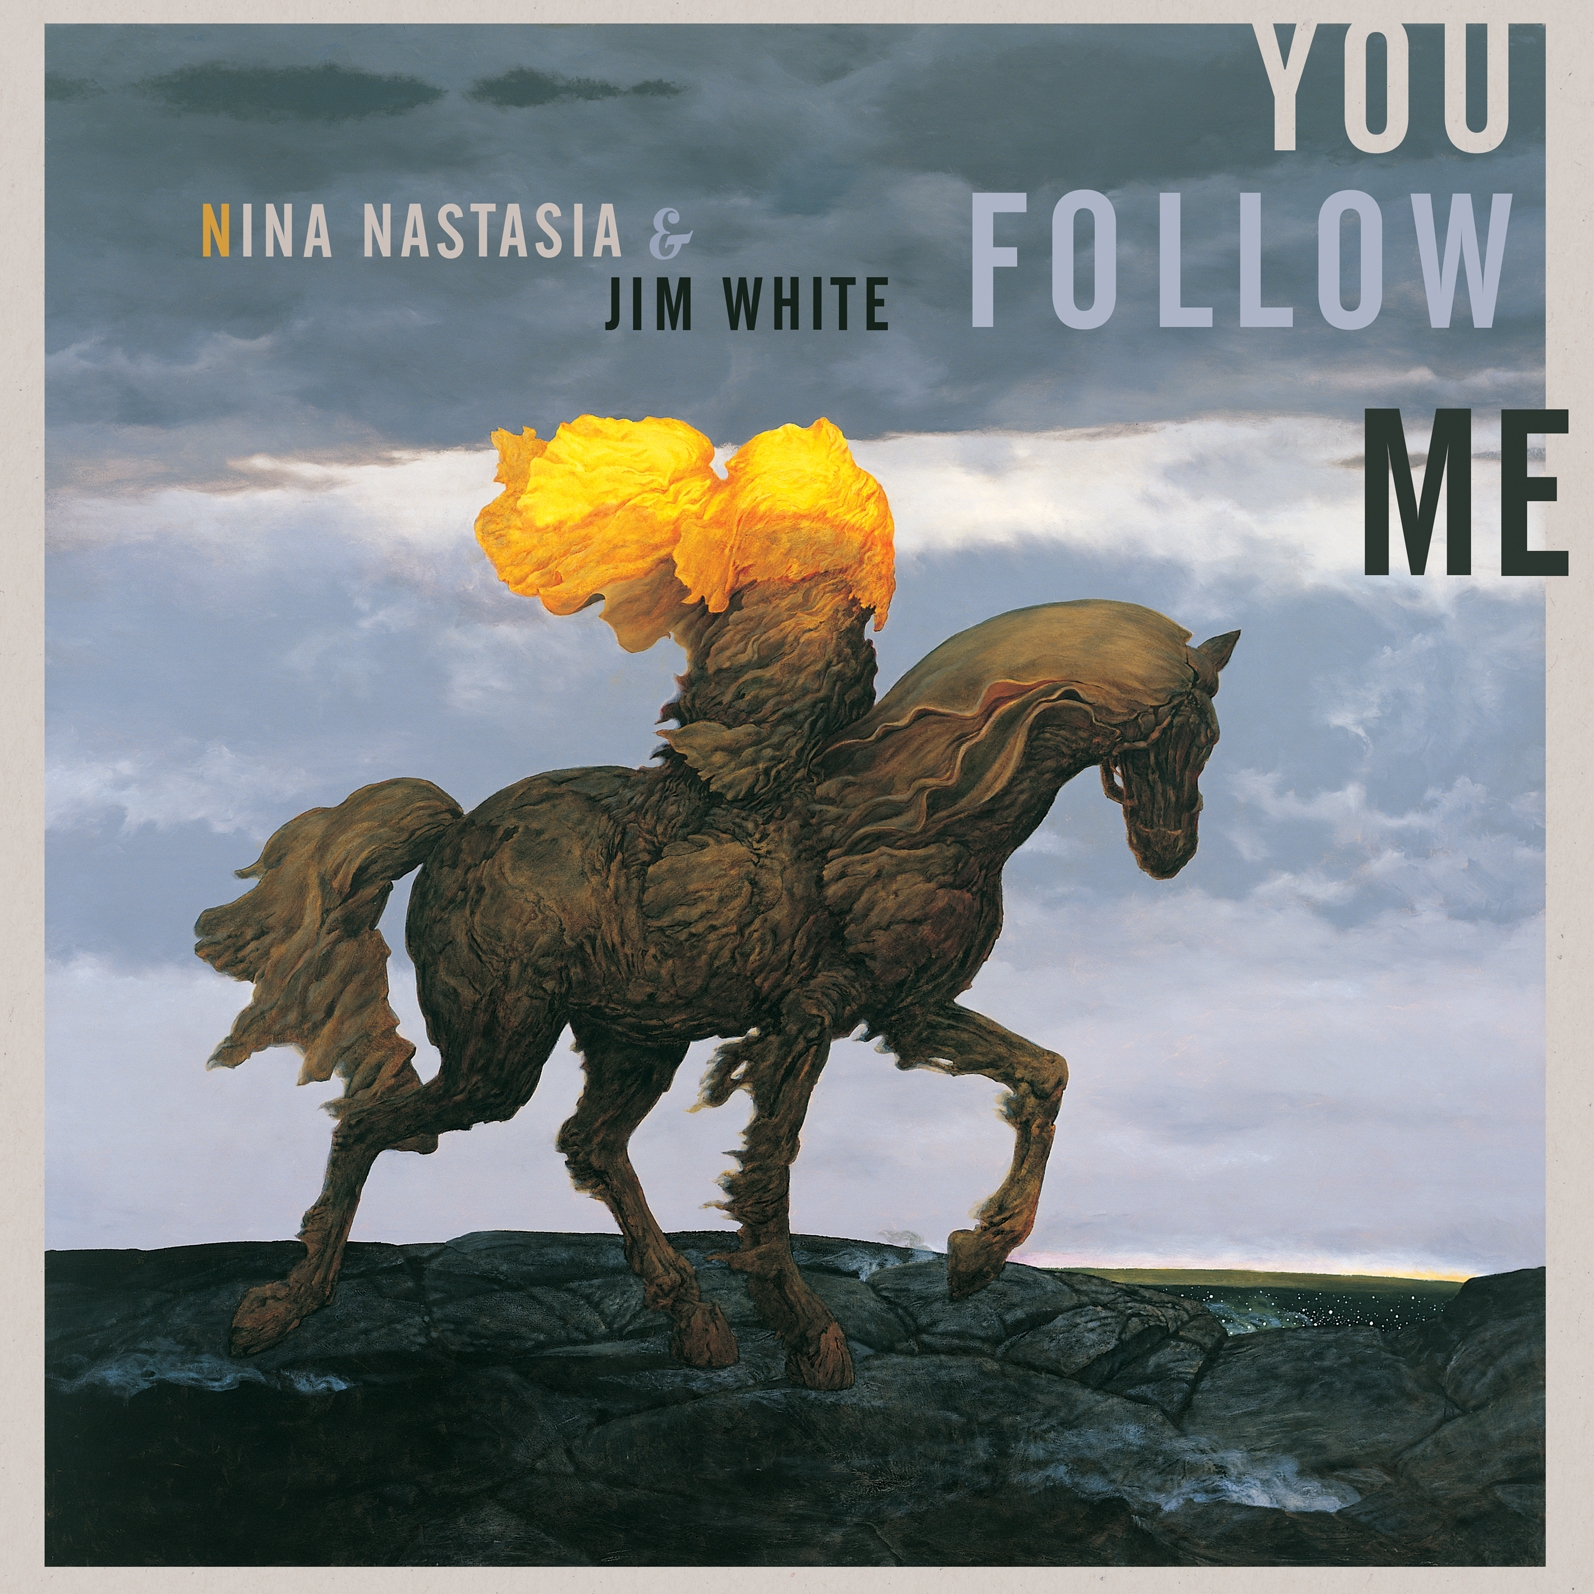 Nina Nastasia and Jim White - You Follow Me